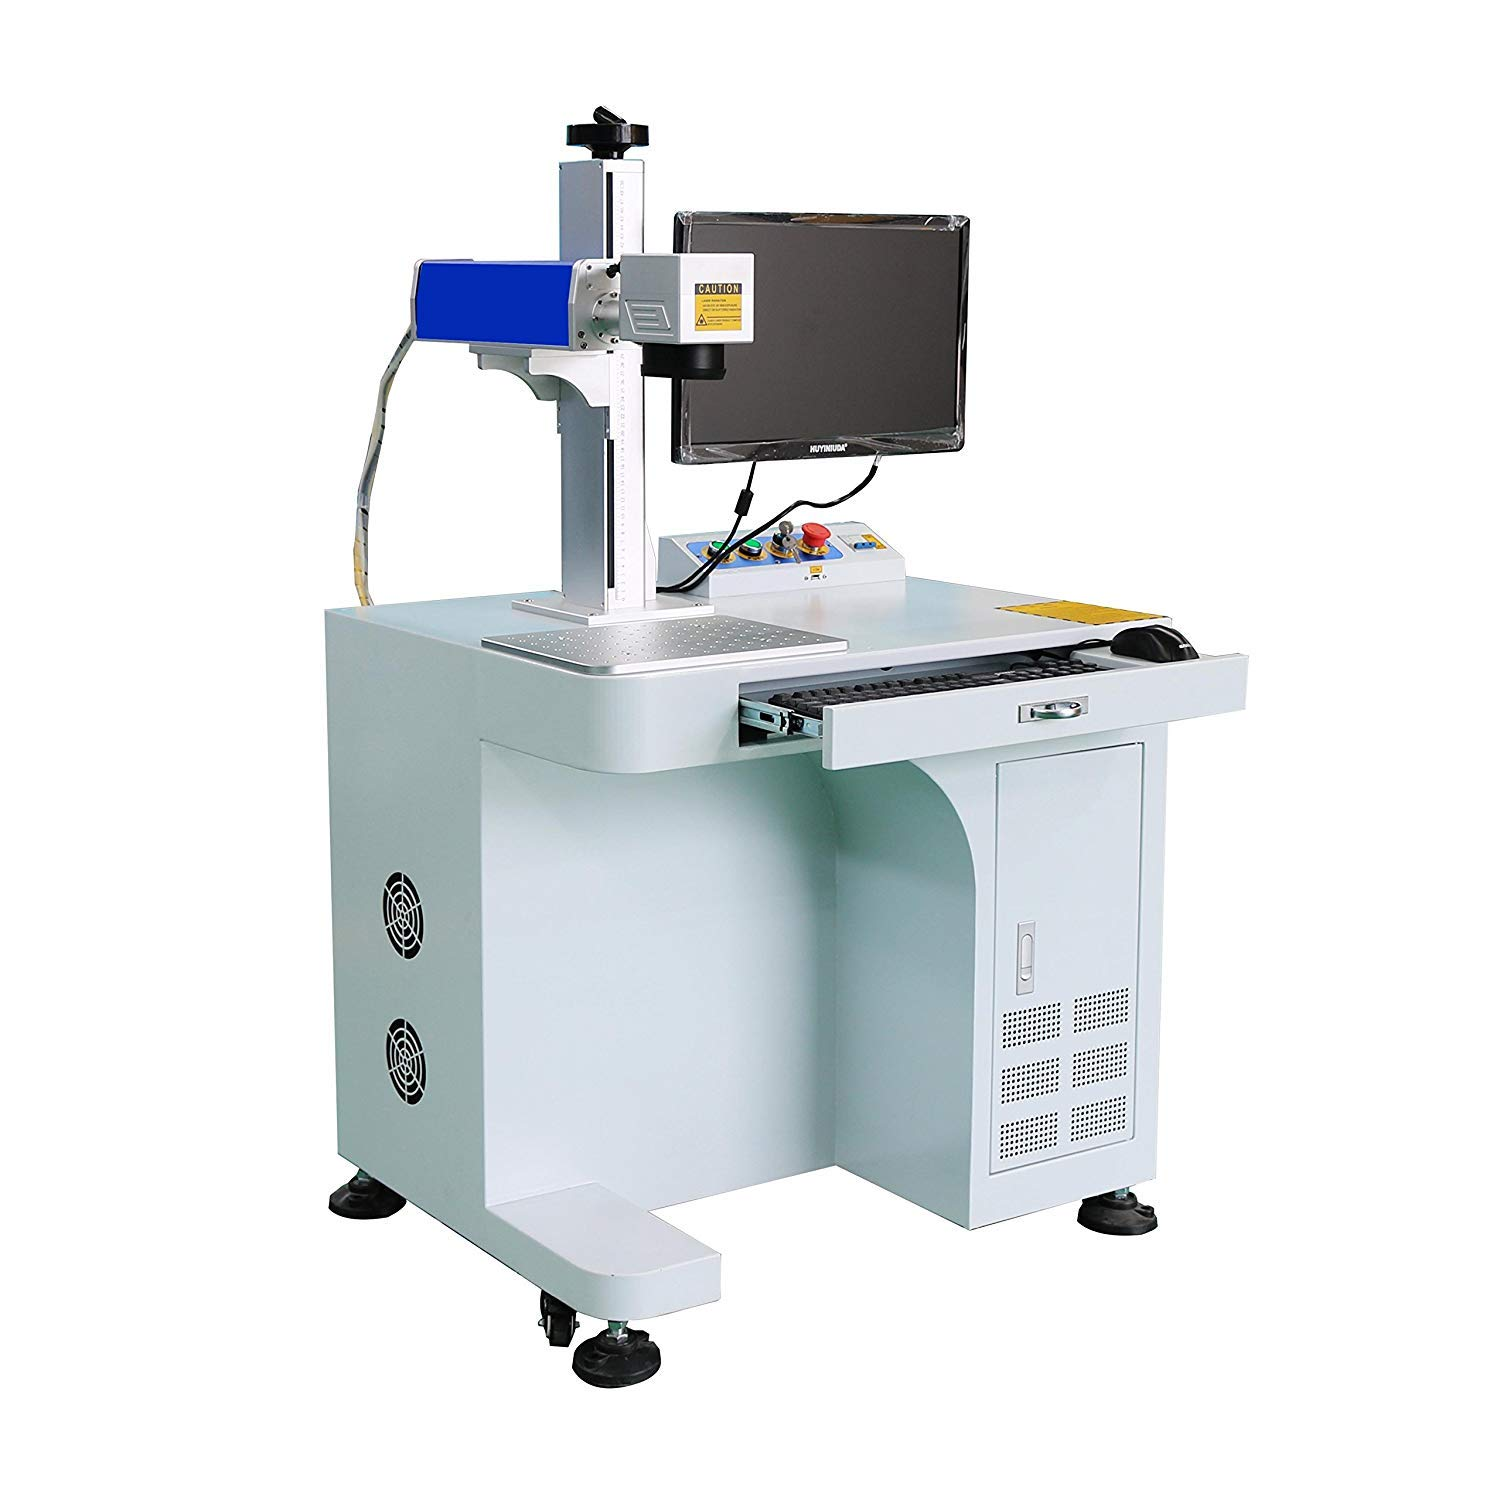 DIHORSE Fiber Laser Marking Machine 30W for Permanent Metal Parts Marking and Engraving, Working Area 300x300mm, with 50MM Rotary Attachment (MAX, 30W, 300x300MM)